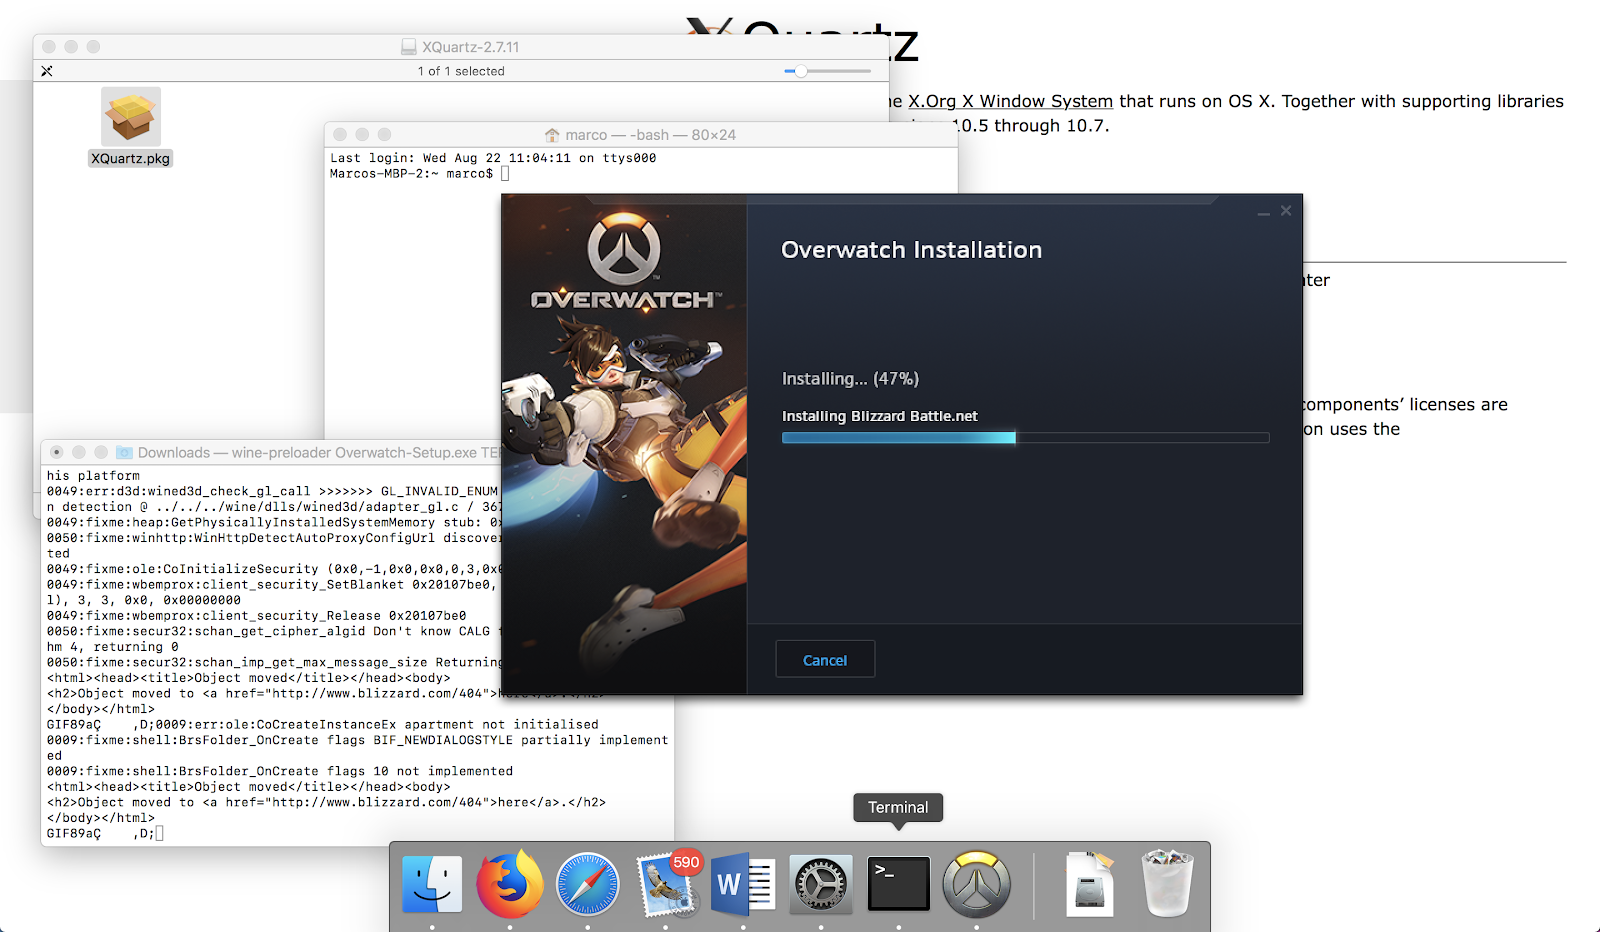 Come installare Overwatch su Mac